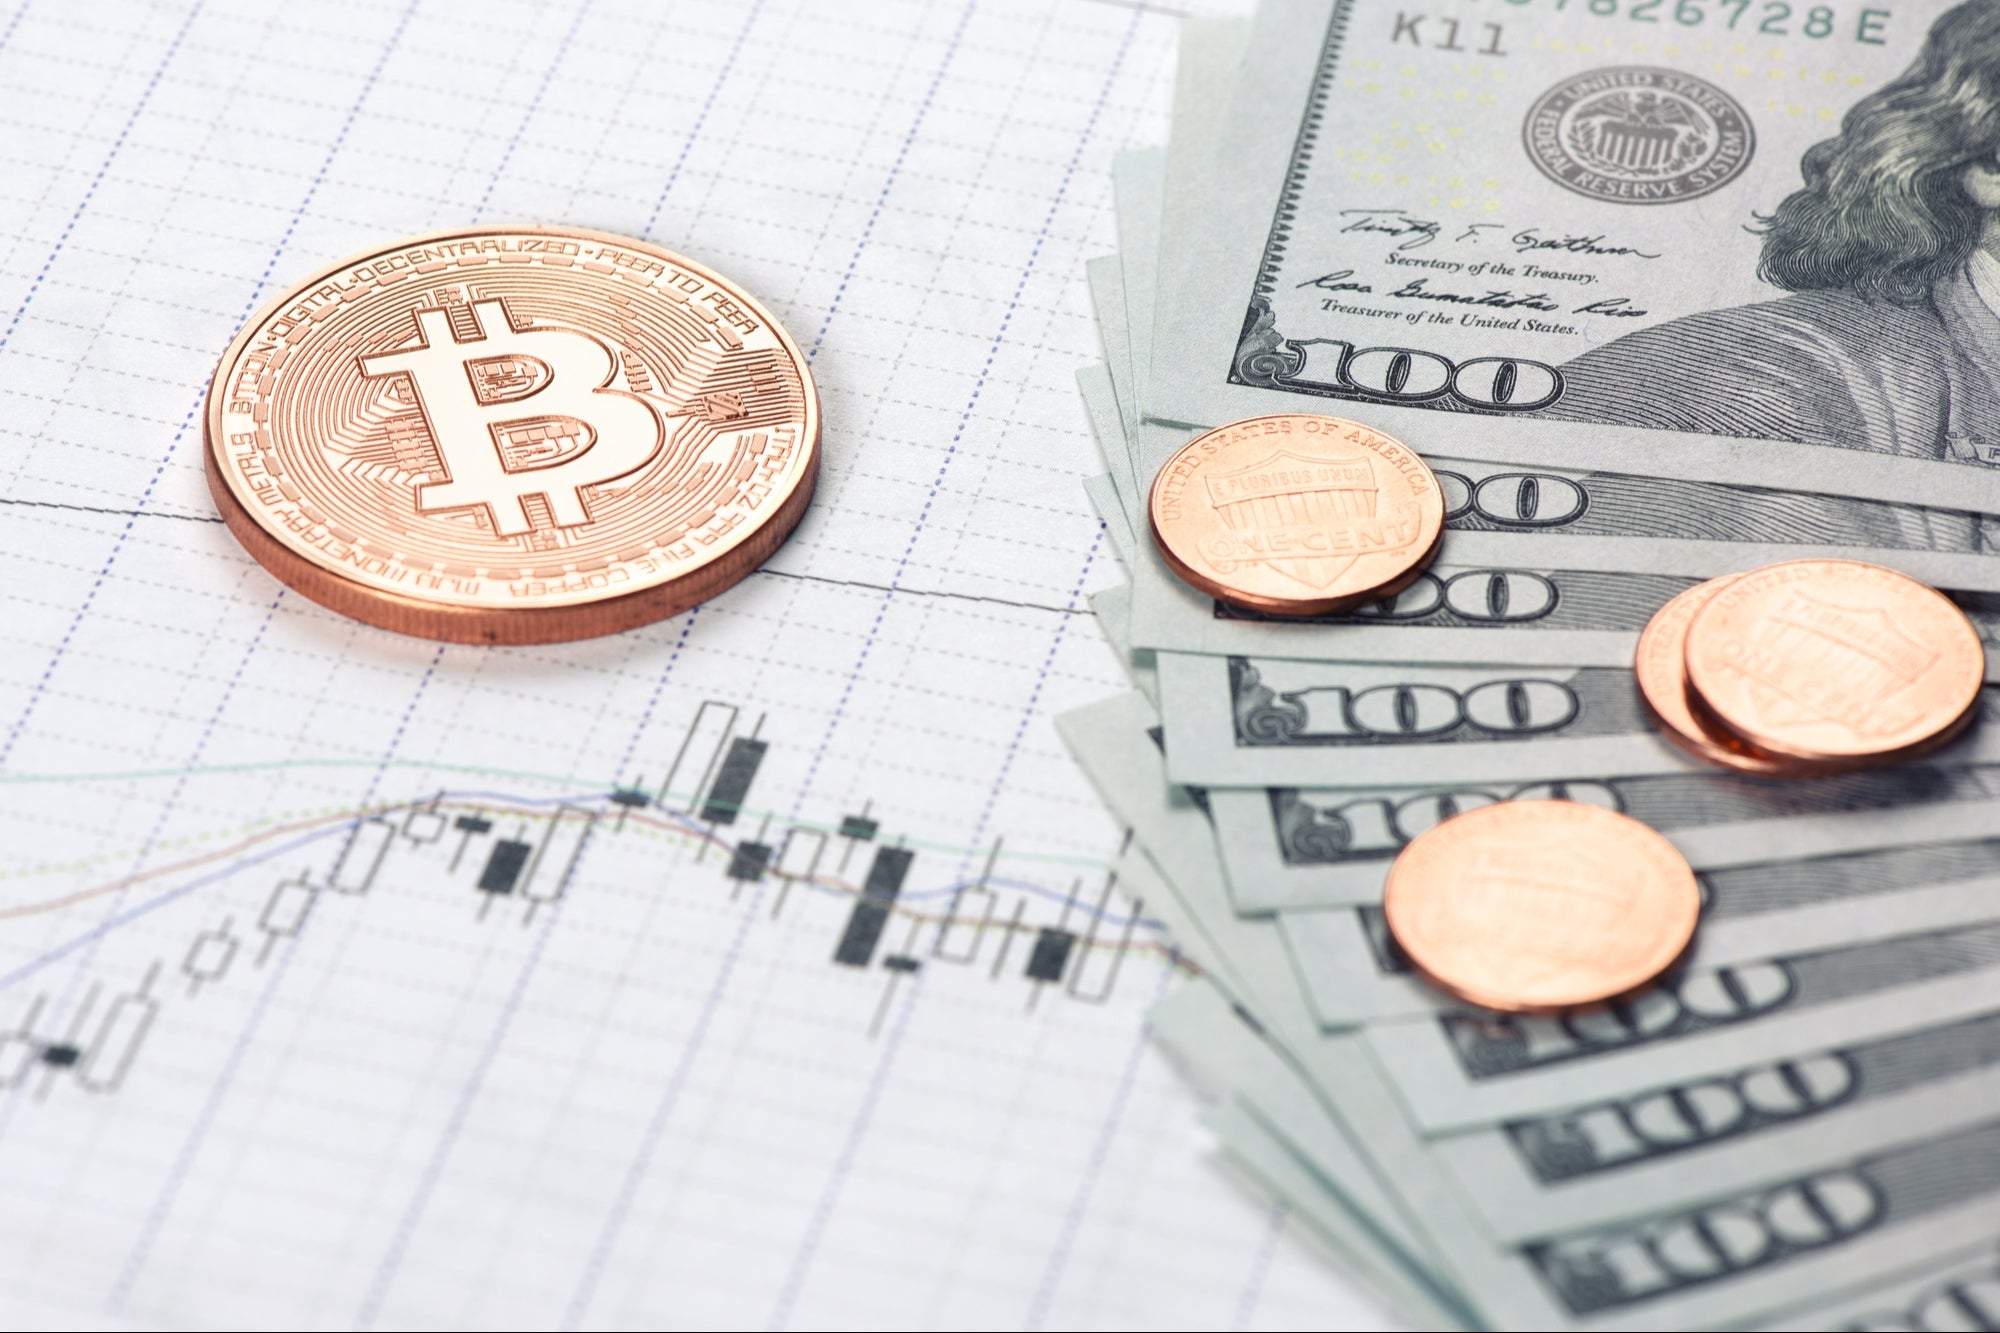 Bitcoin exceeds $ 47,000 and sets a new record